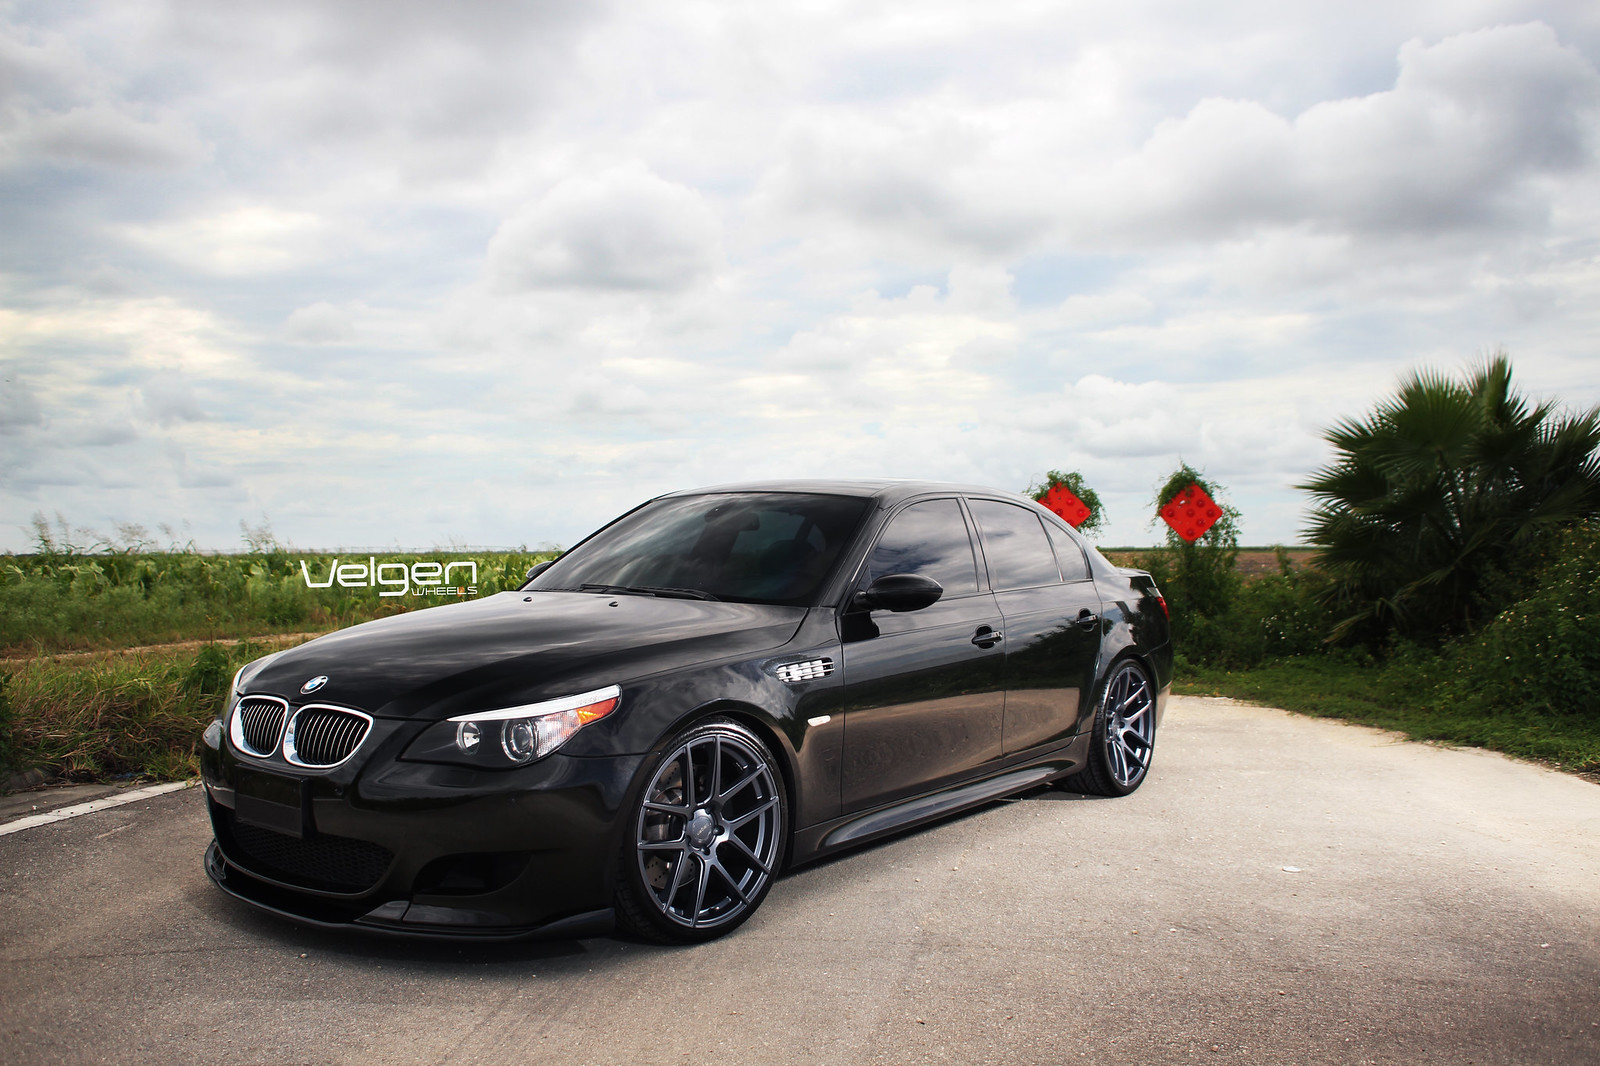 Bmw E60 M5 On Velgen Wheels Clublexus Lexus Forum